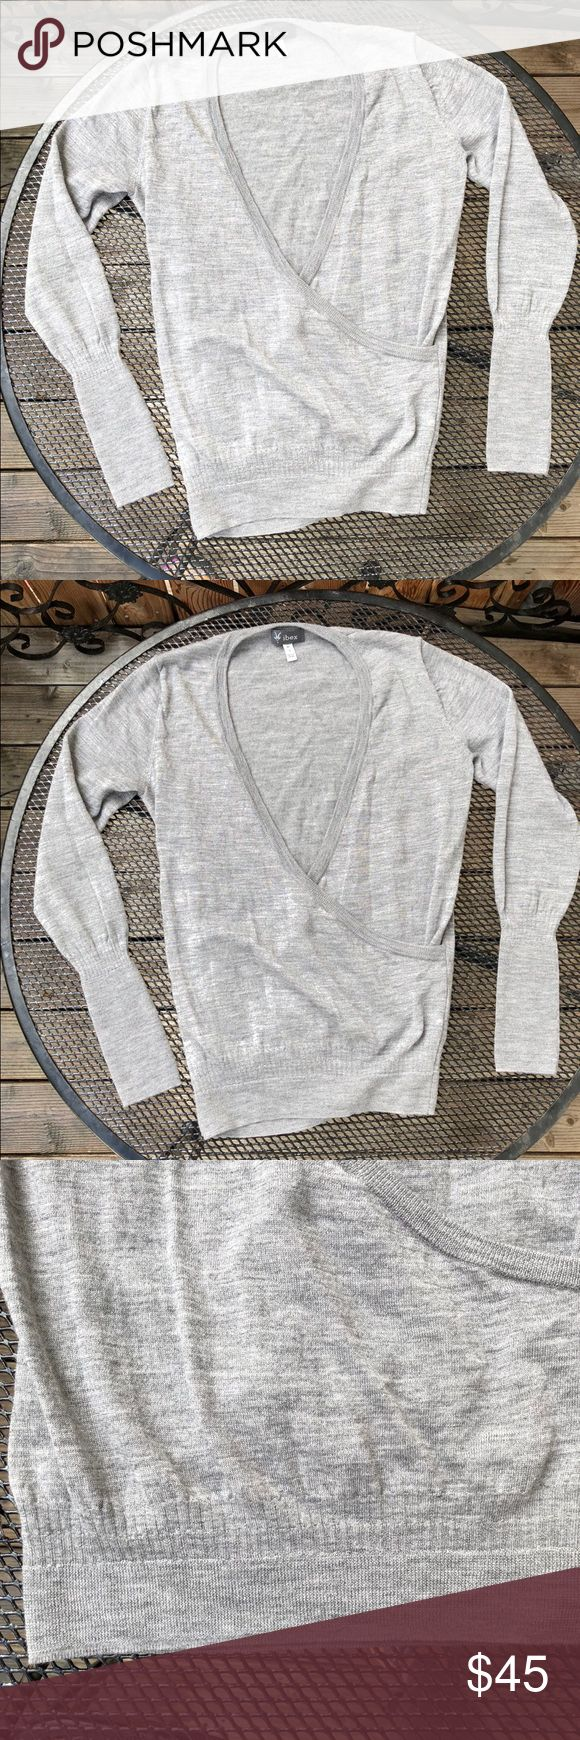 IBEX Arabesque Wool Cardigan Sweater S Super soft gorgeous wool! Not worn. With tag. Looser fitting, another top needs to be under it. Light heathered silvery grey. IBEX Sweaters Cardigans